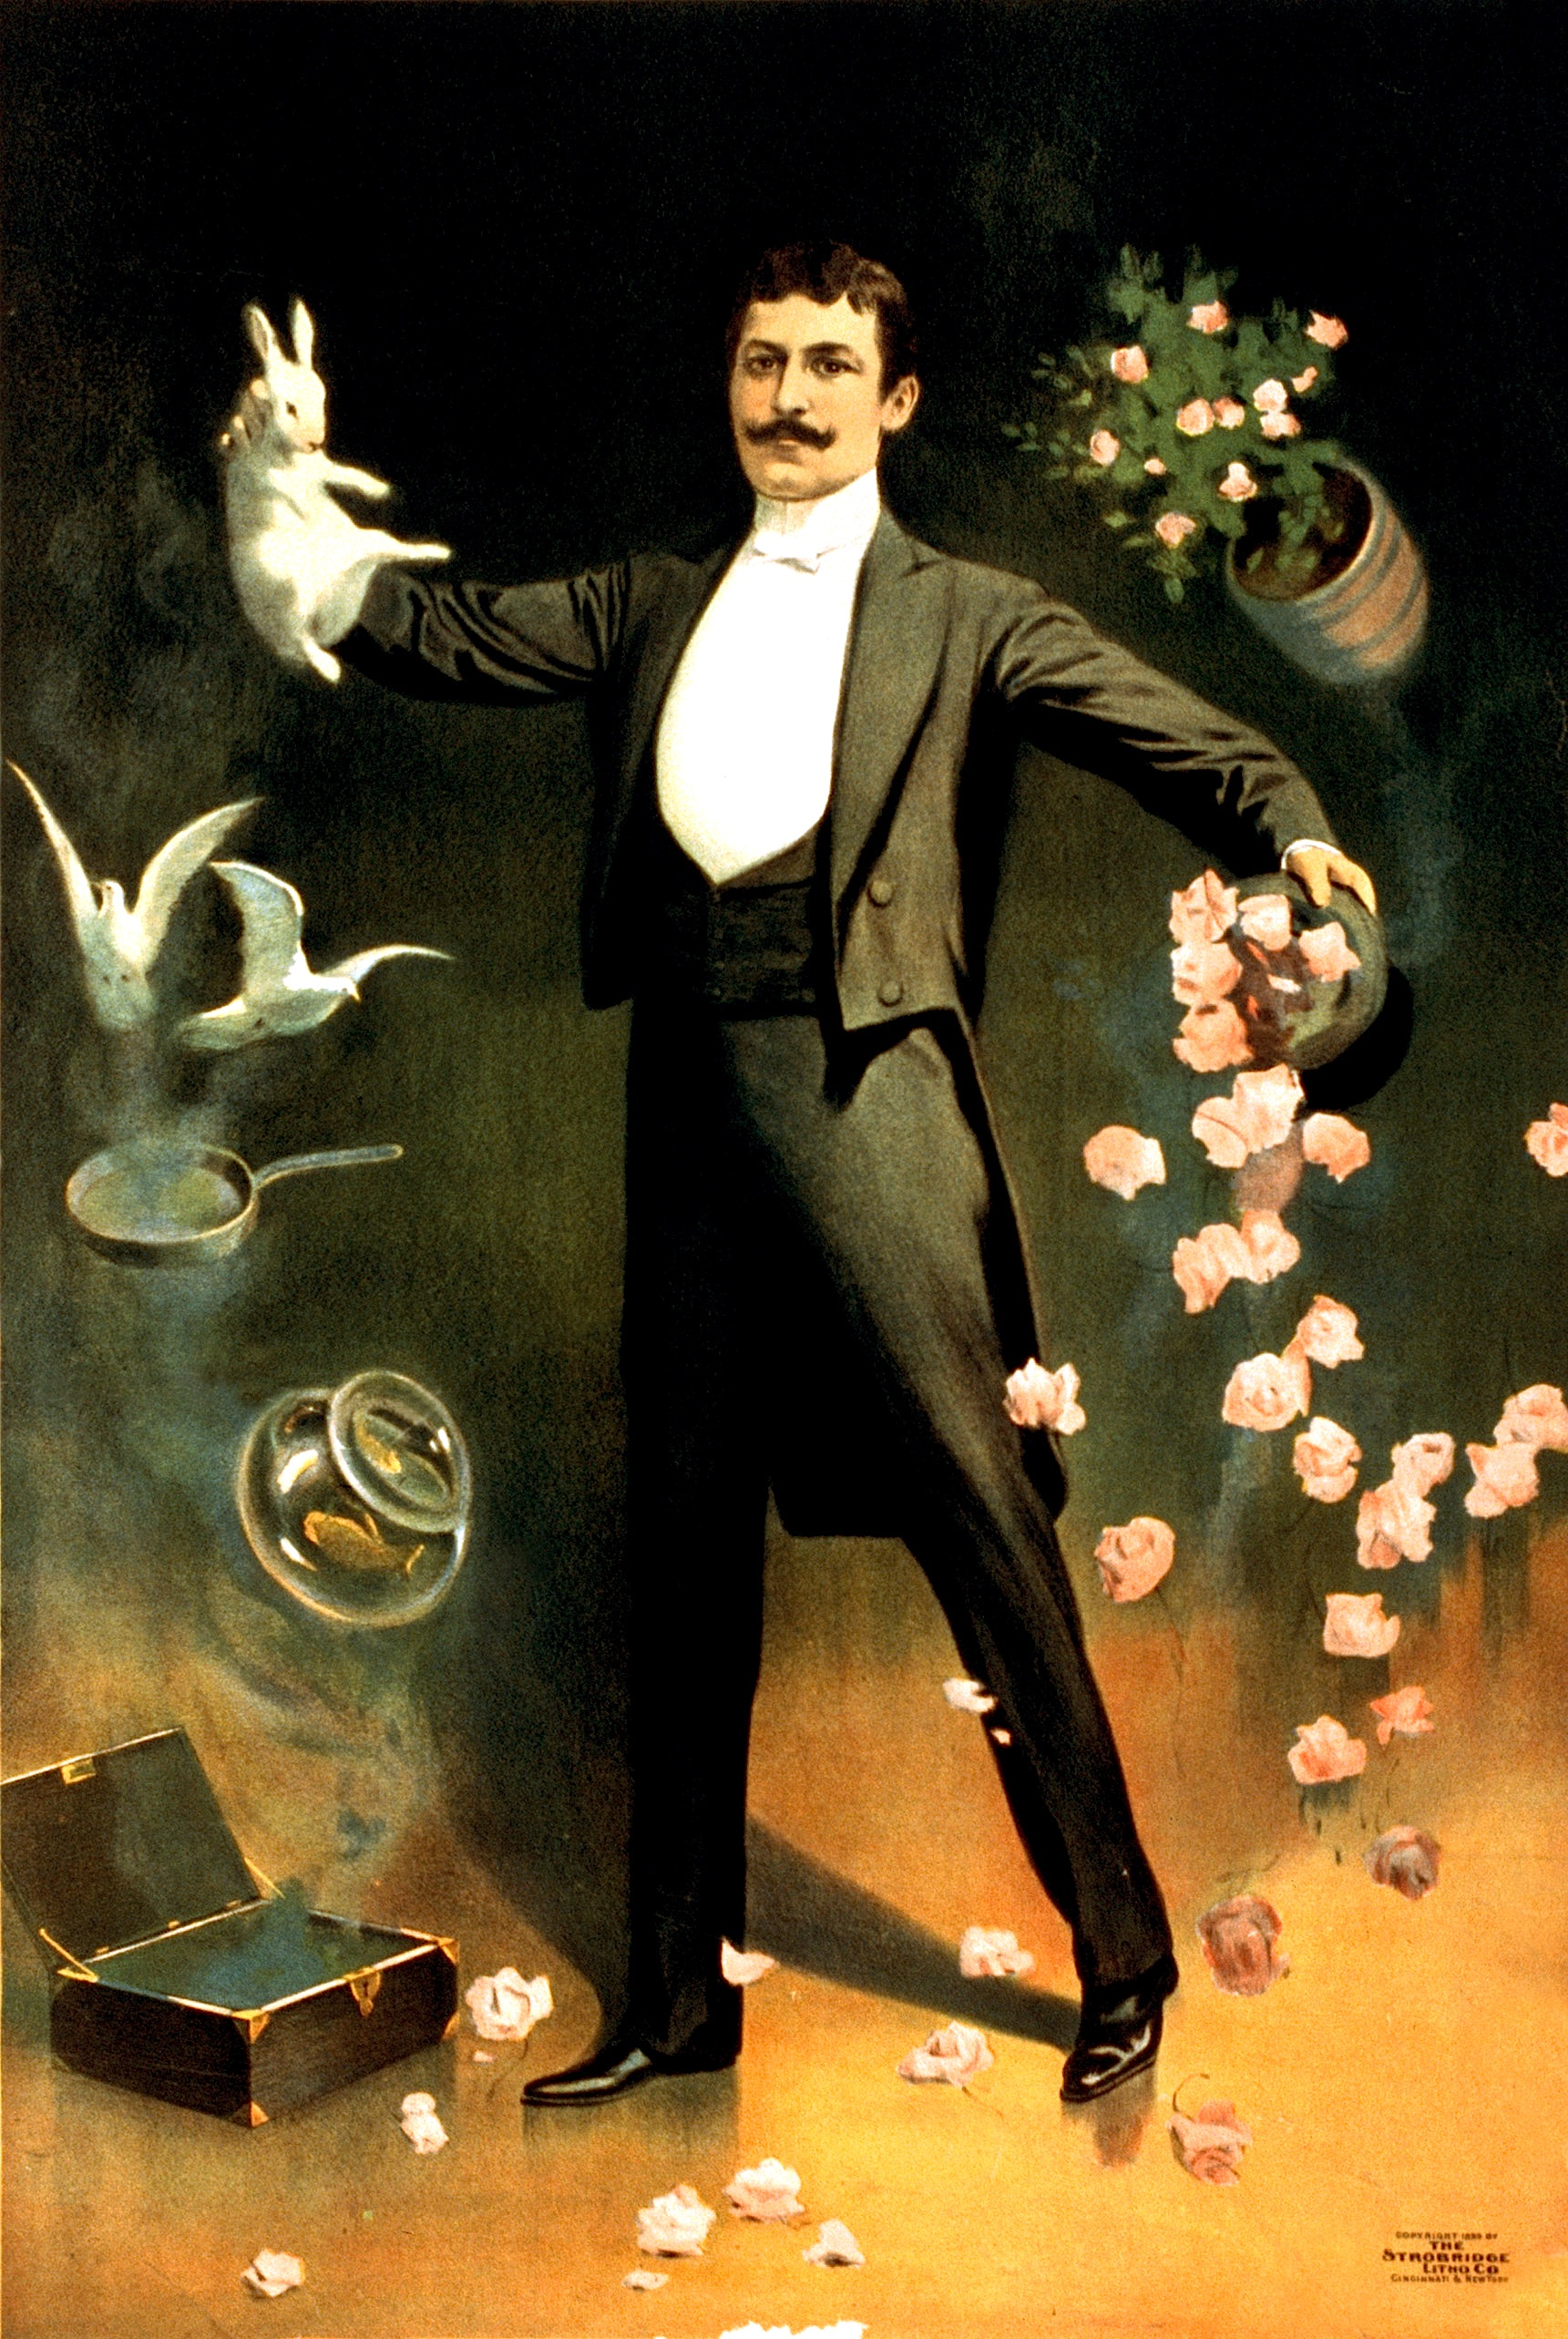 http://upload.wikimedia.org/wikipedia/commons/8/8f/Zan_Zig_performing_with_rabbit_and_roses,_magician_poster,_1899-2.jpg